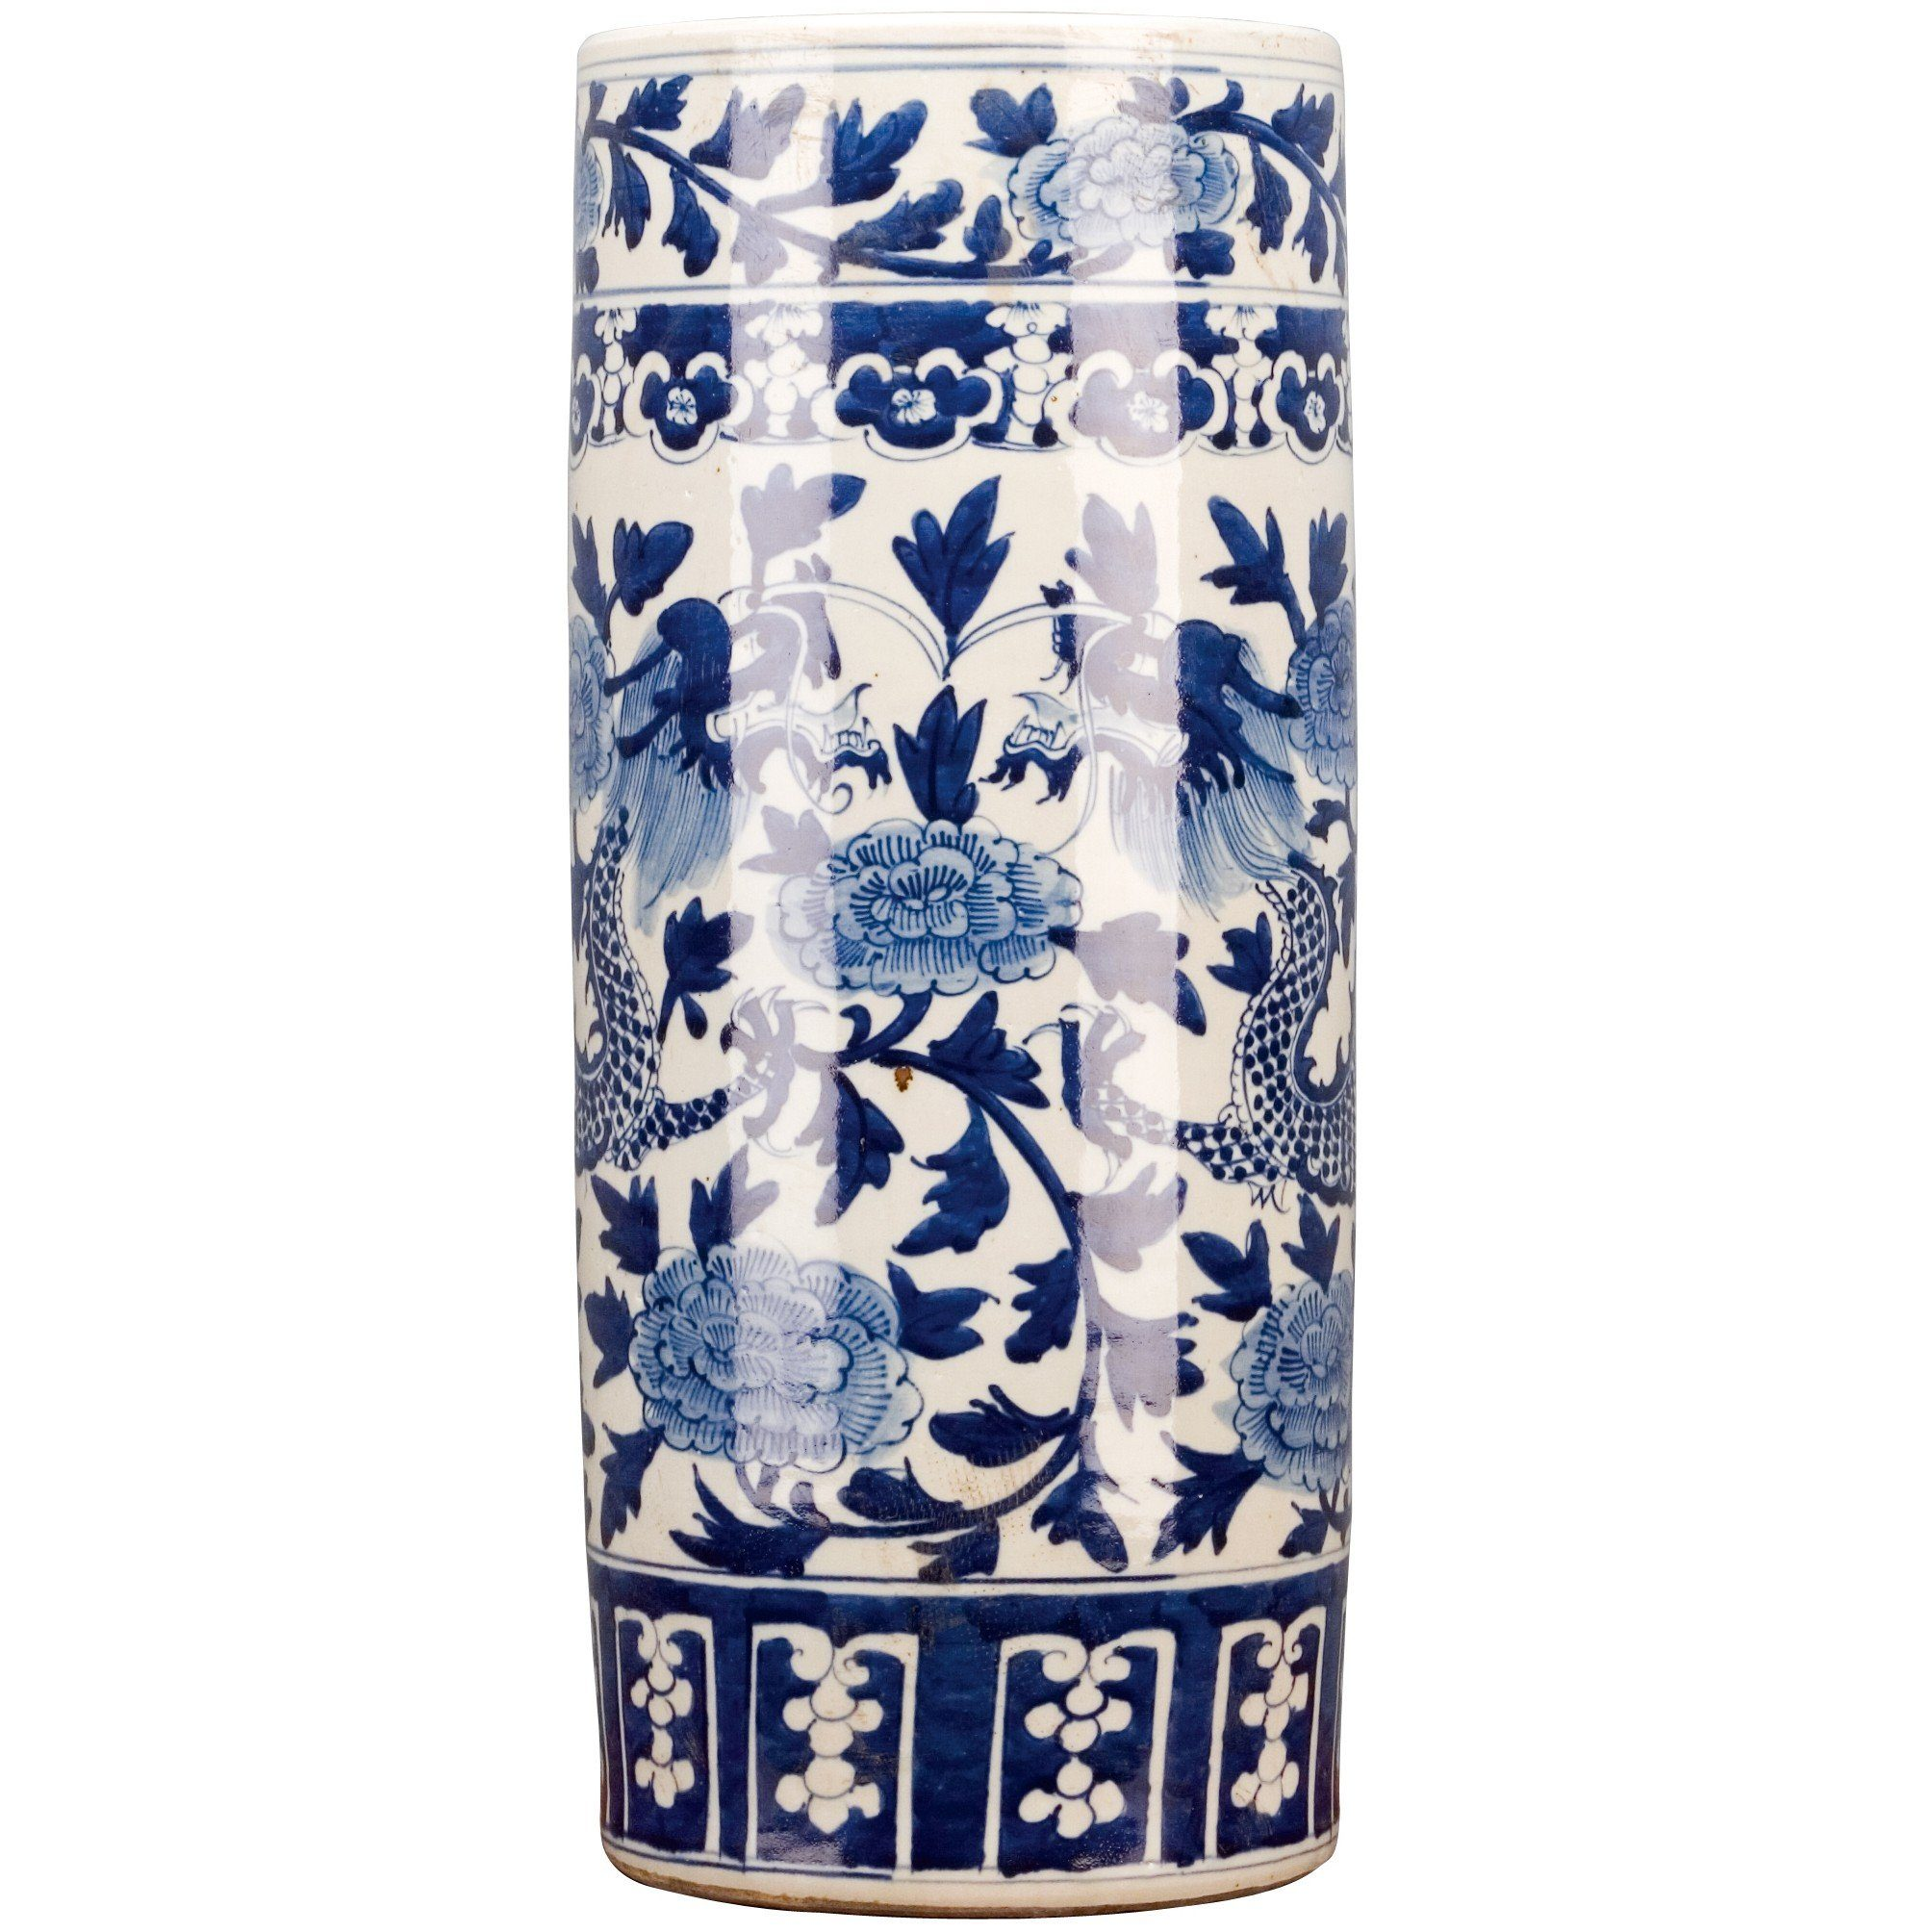 Lovecup Classic Blue and White Porcelain Umbrella Stand - LOVECUP